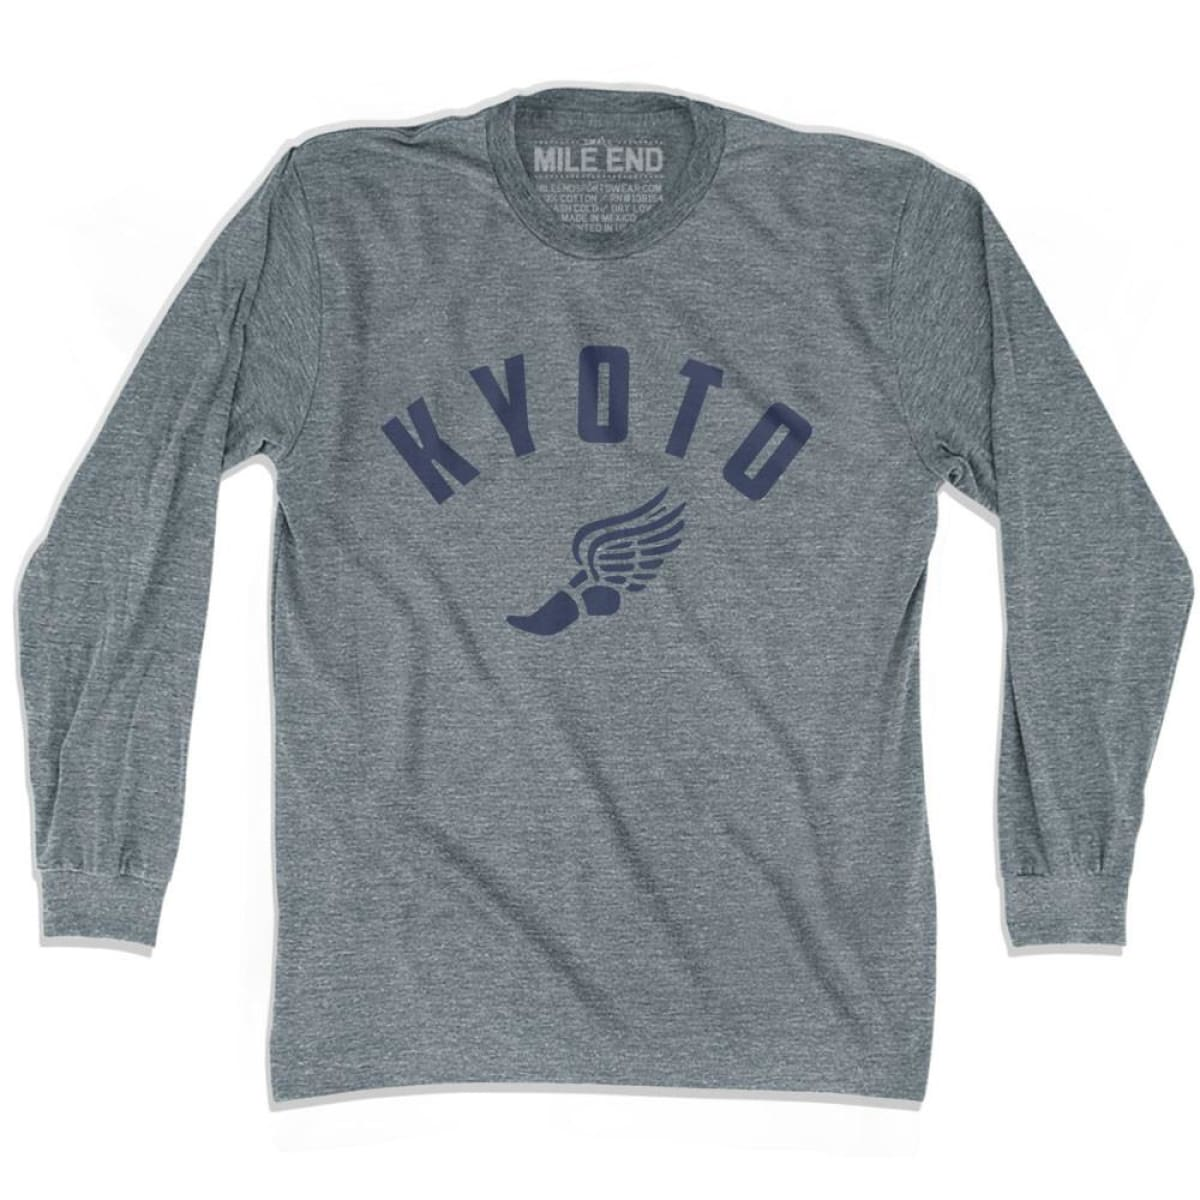 Kyoto Track Long Sleeve T-shirt - Athletic Grey / Adult X-Small - Mile End Track